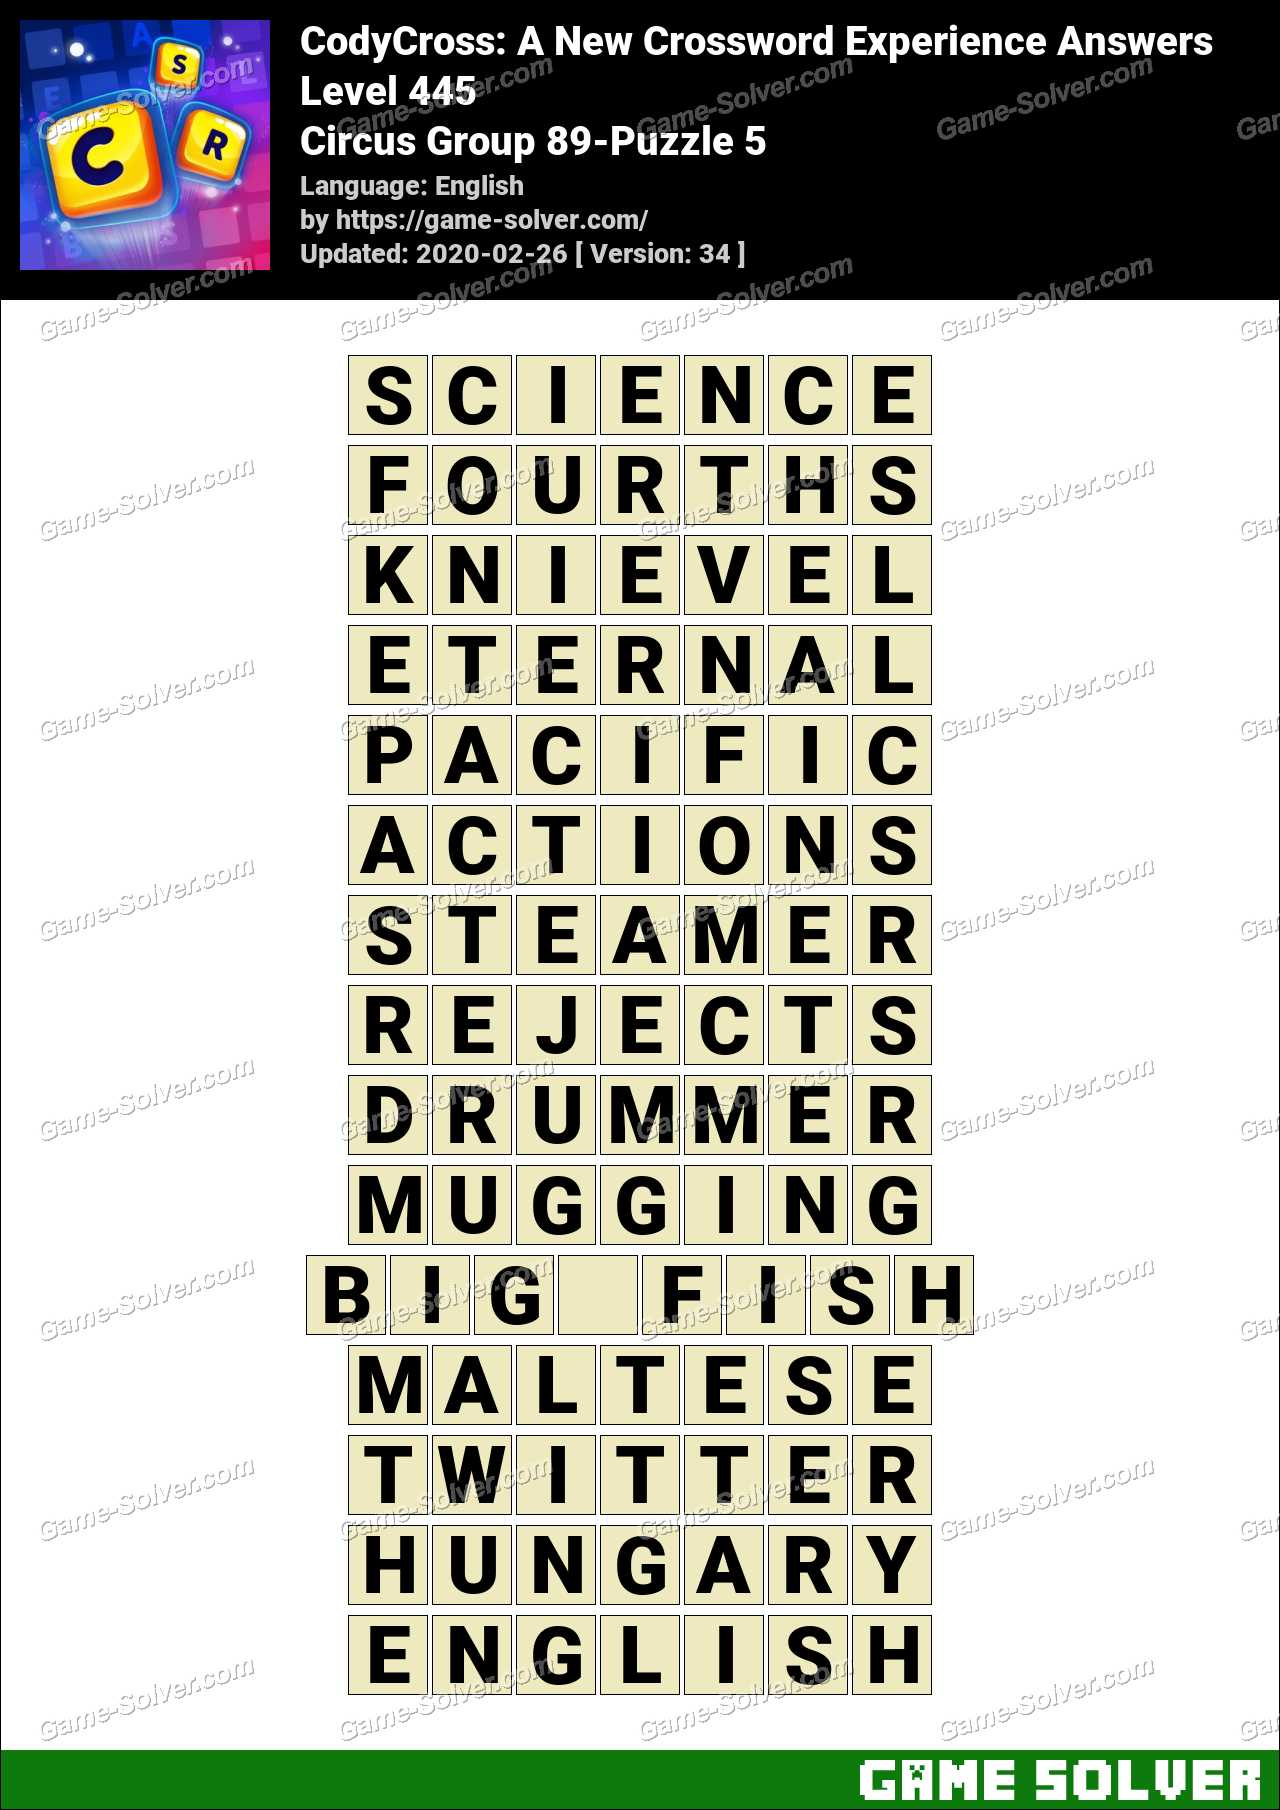 CodyCross Circus Group 89-Puzzle 5 Answers